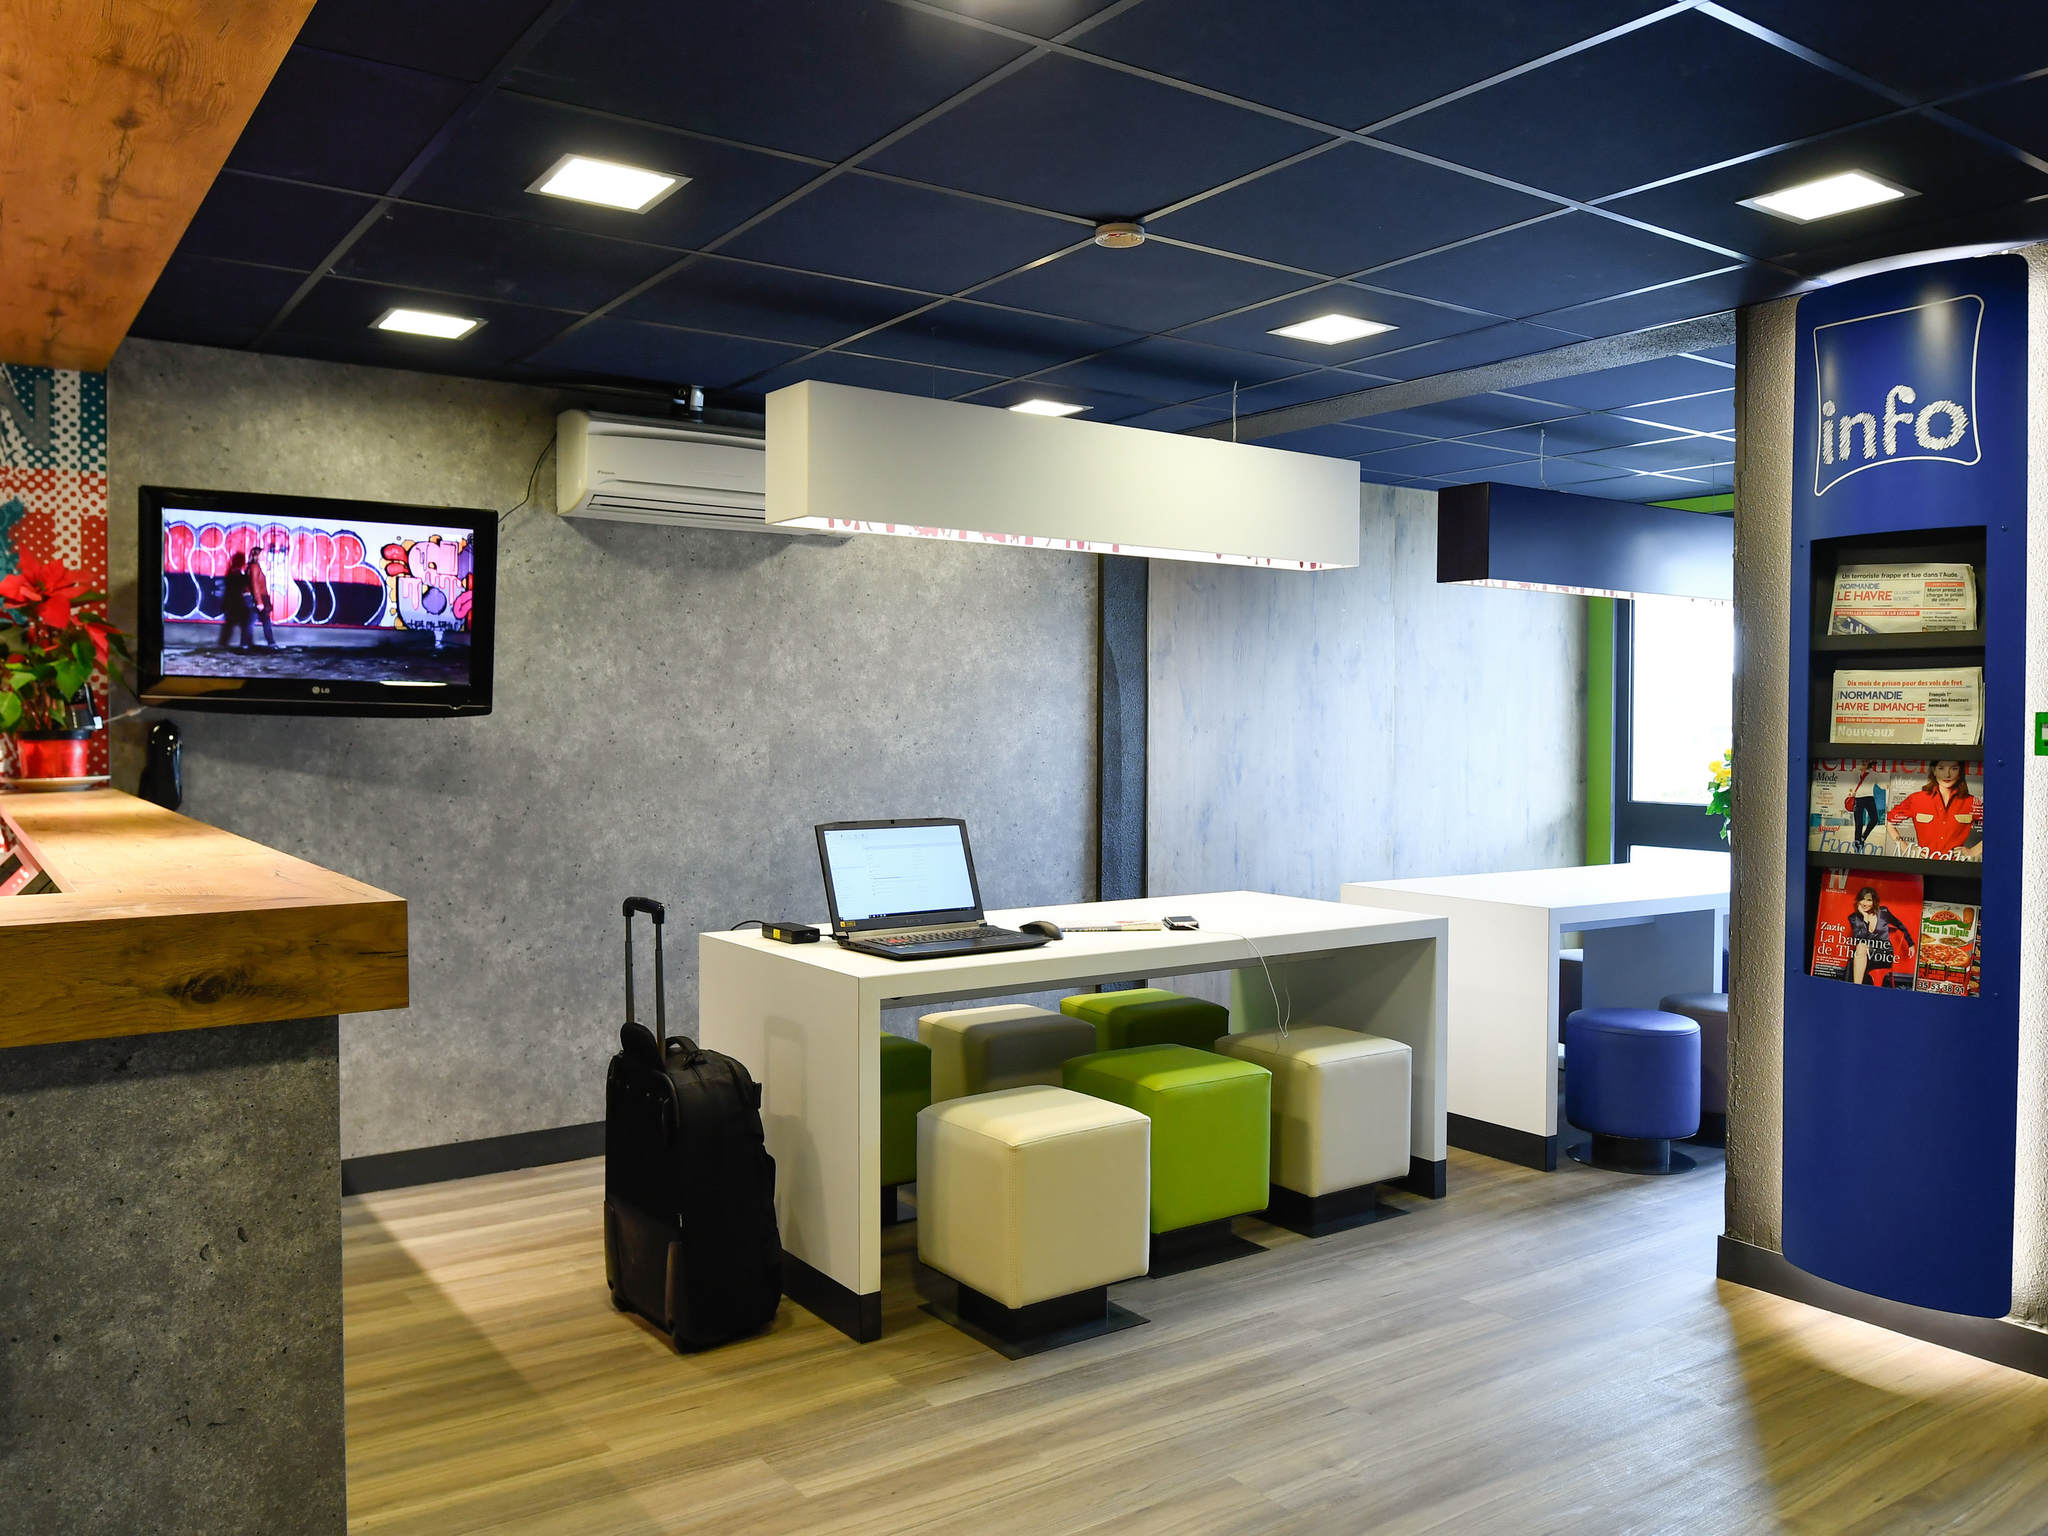 Hotel Le Havre Ibis Budget